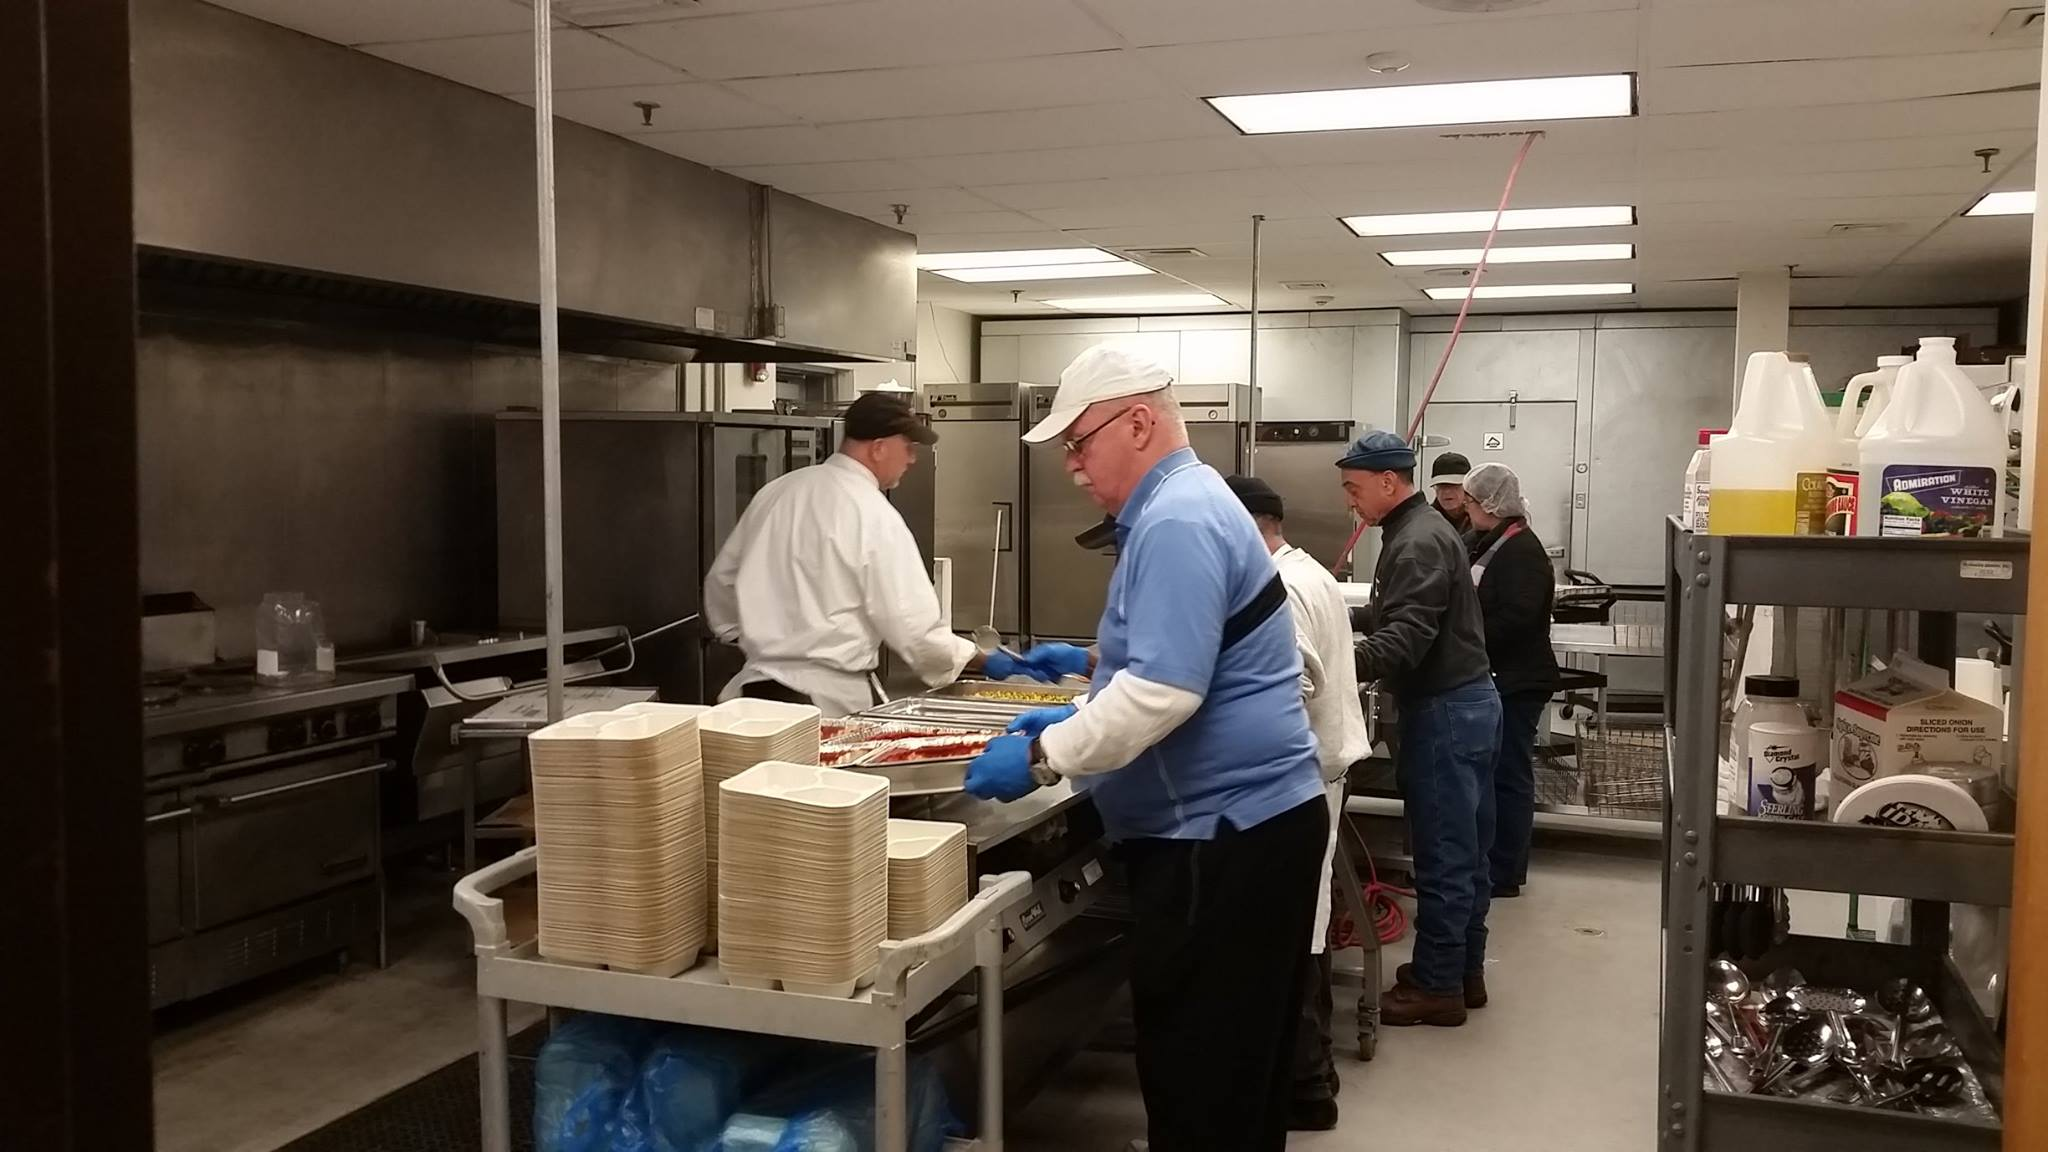 Meals are prepared in a kitchen for Ocean County senior citizens. (Photo: Ocean County Meals on Wheels)